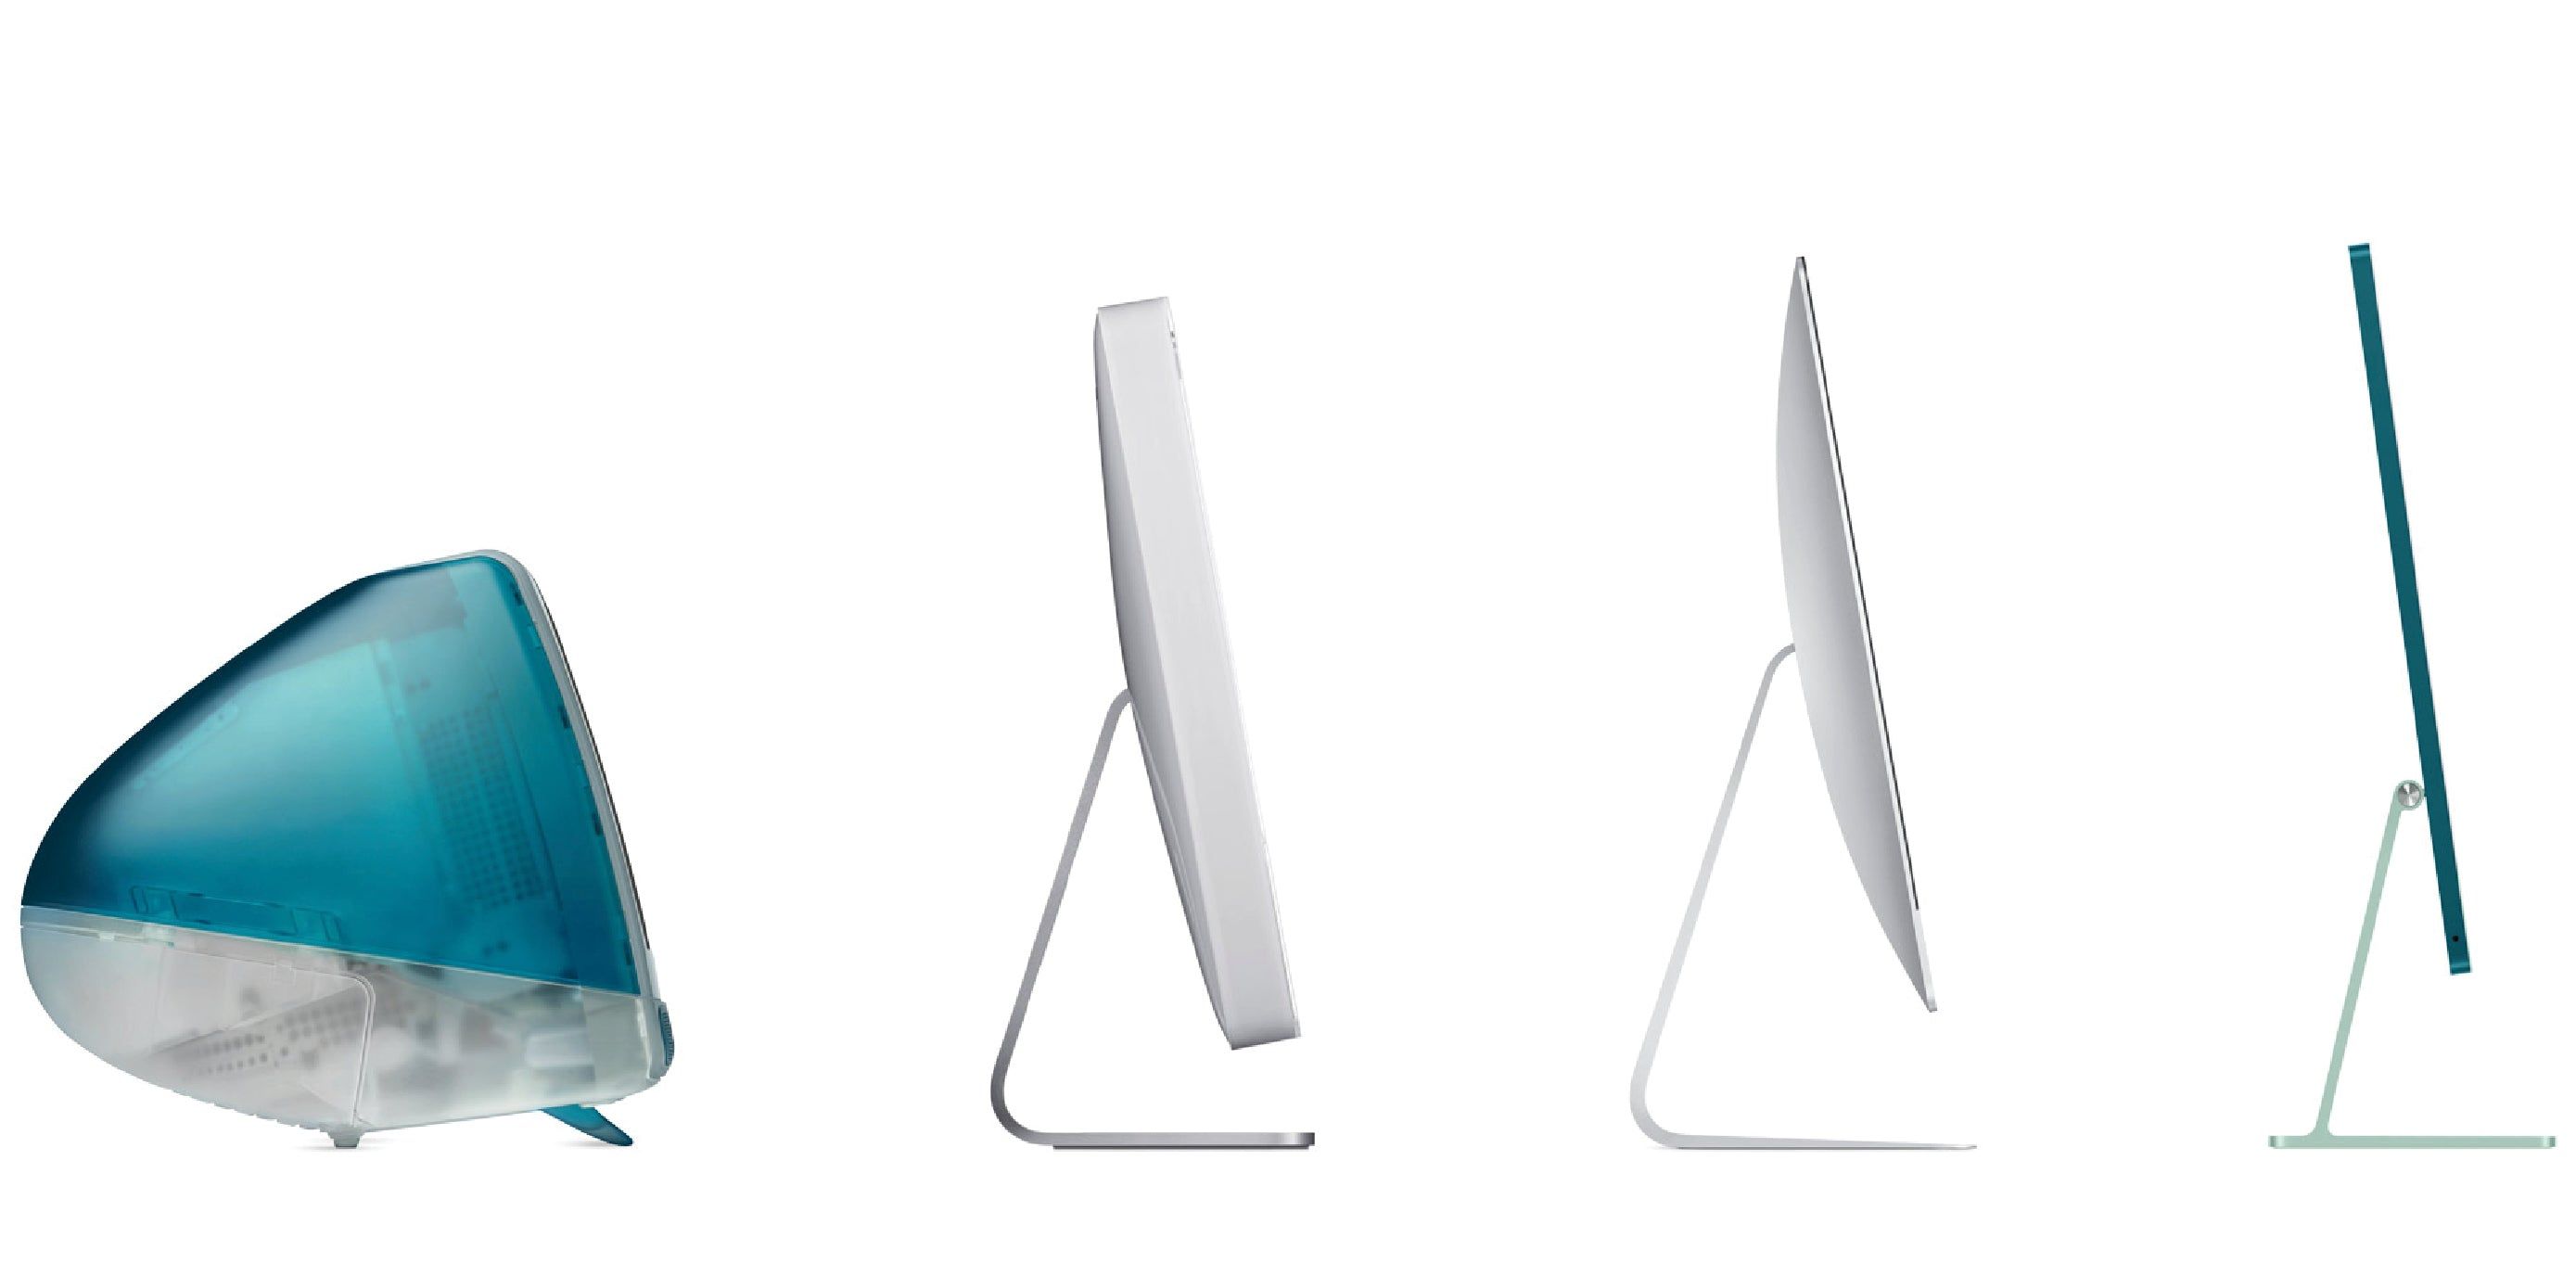 The Future and Sustainable Eco Efficiency: Apple Eco Evolution